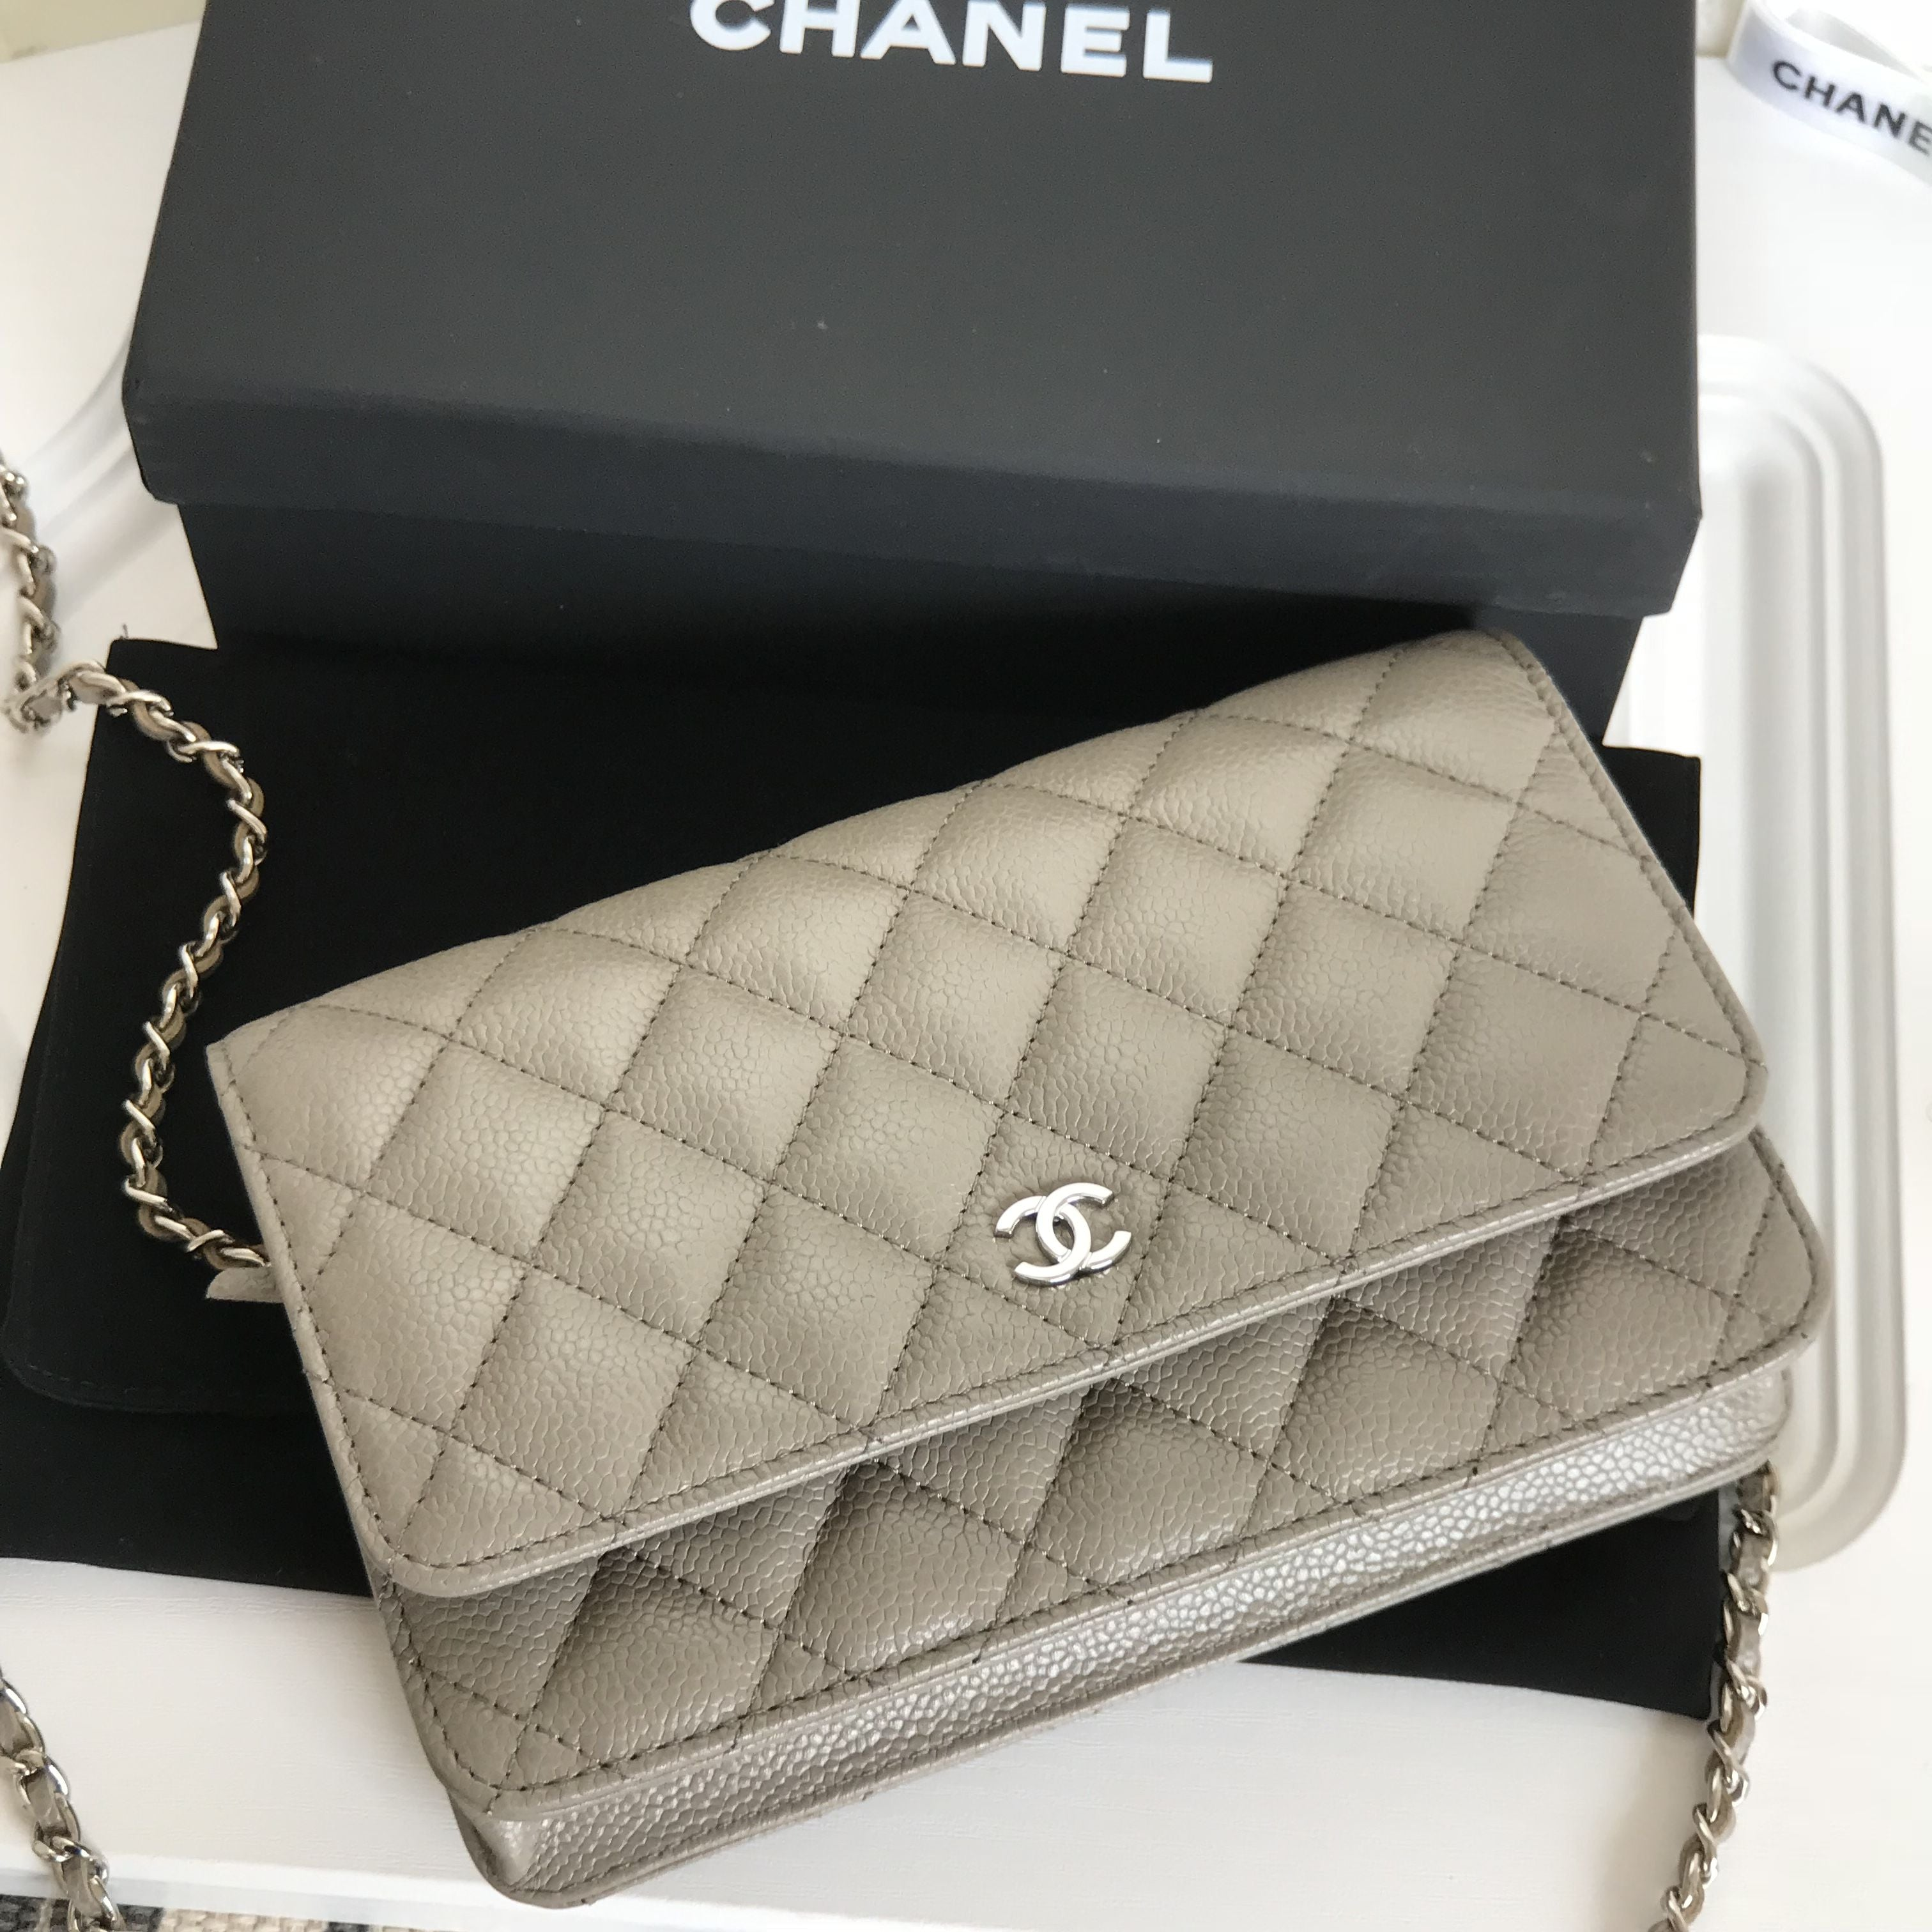 How Much Is Chanel Now After January 2021 Price Increase in the USA? Chanel WOC